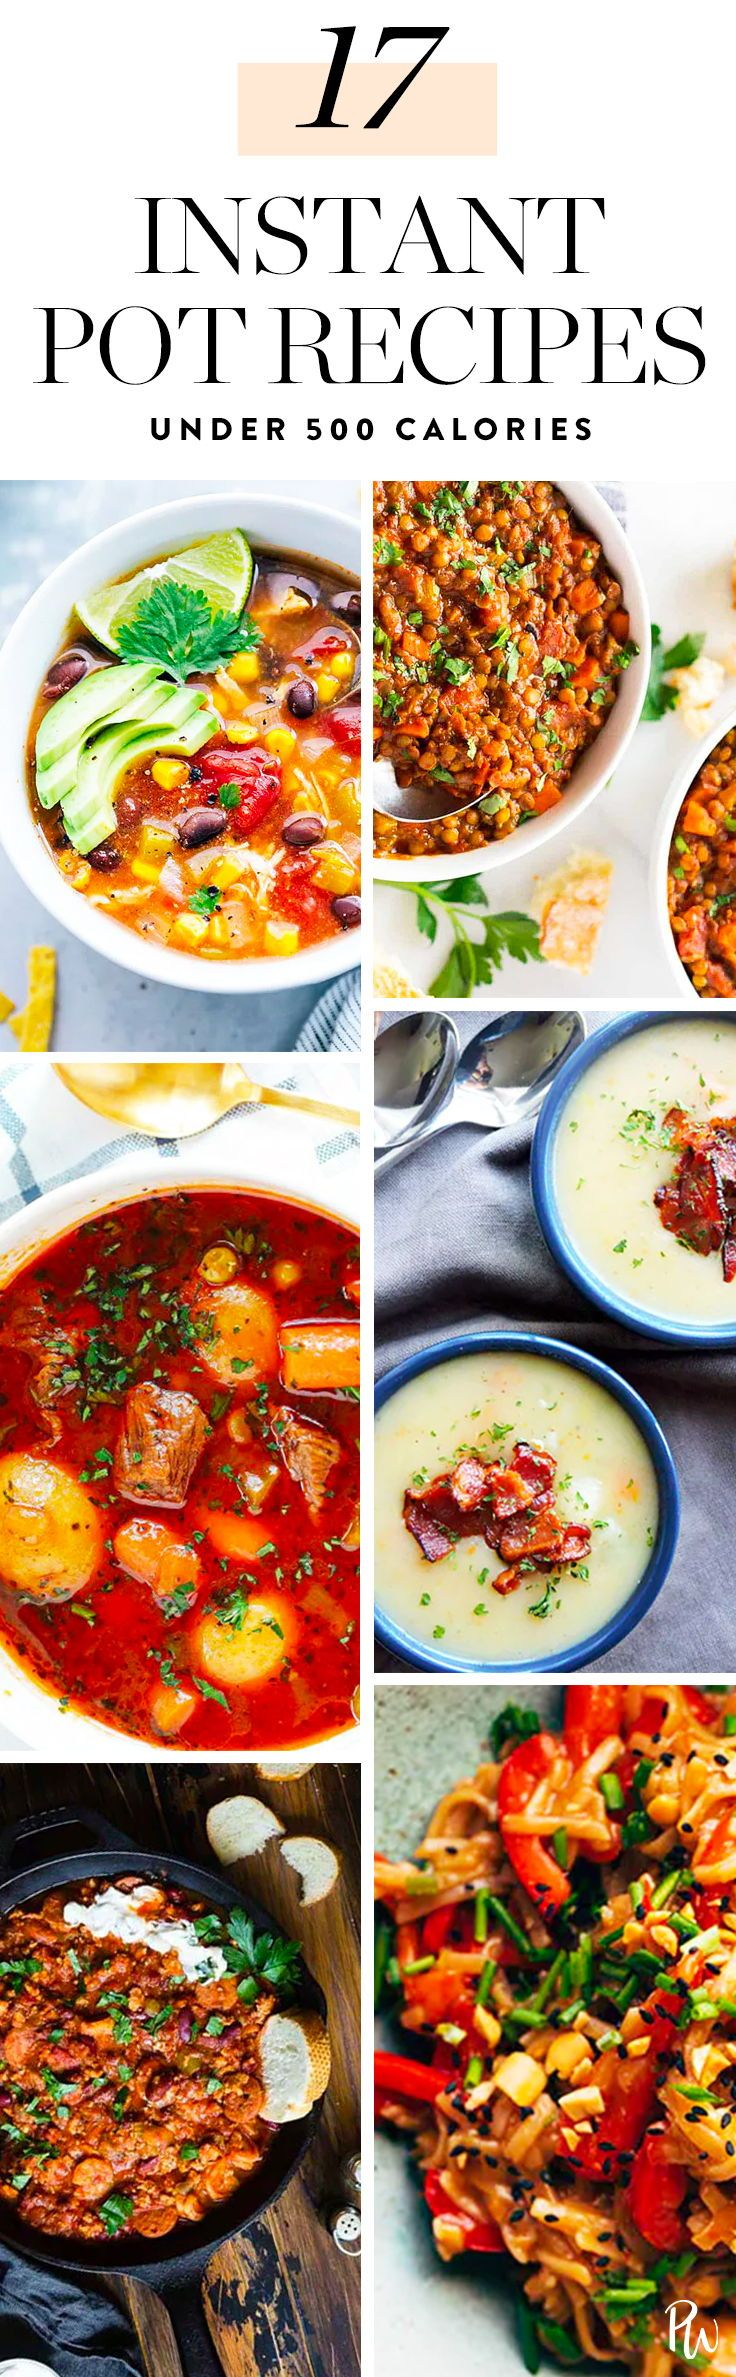 Yesss, These 17 Instant Pot Dinners Are 500 Calories or Less. #instantpot #instantpotdinners #dinnerrecipes #easydinners #food #soup #chickenrecipes #healthydinners #healthyrecipes